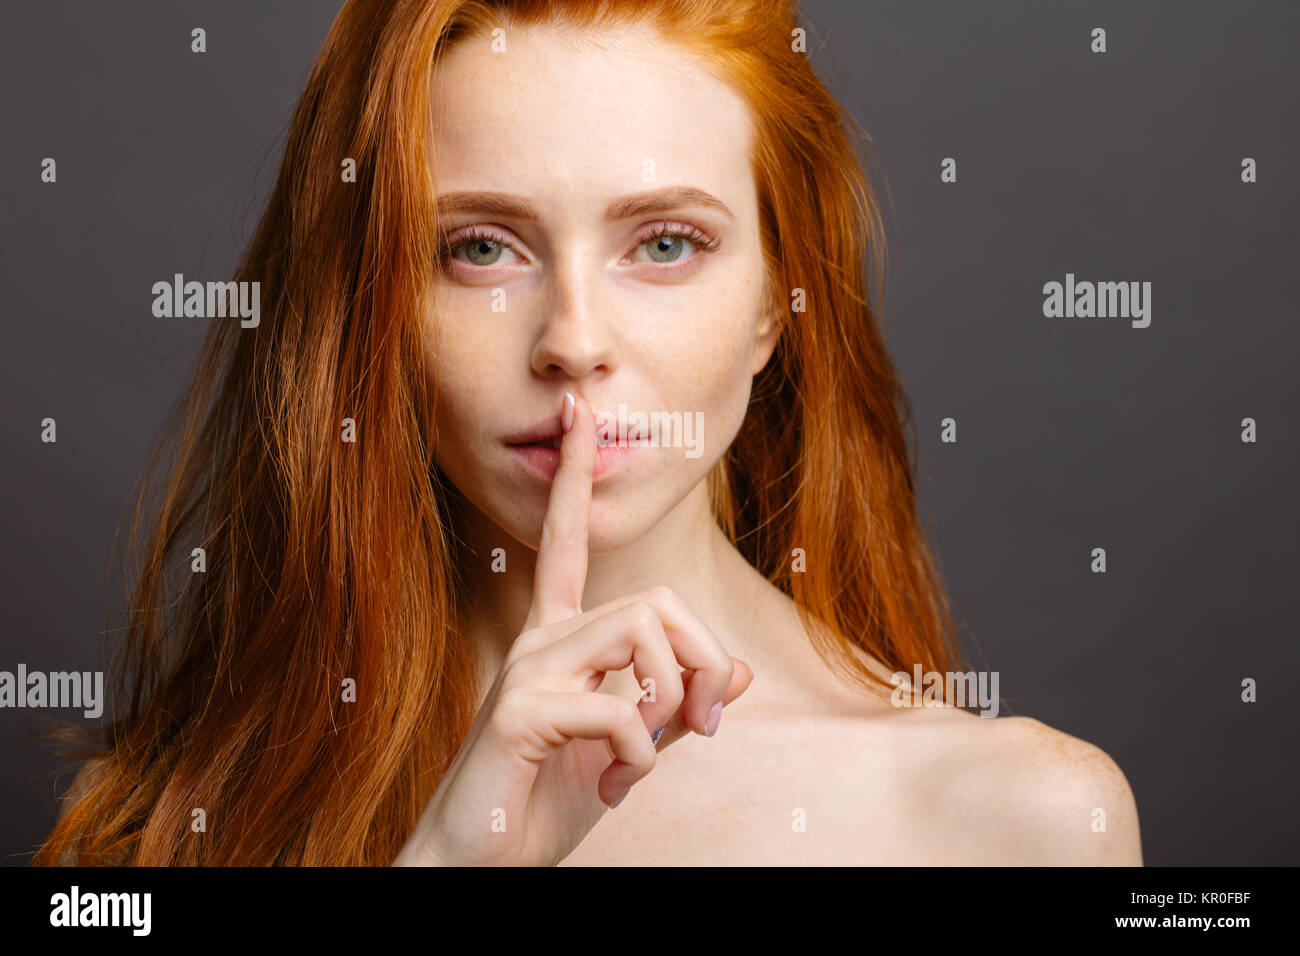 girl holding index finger at her lips, saying 'shh' - Stock Image